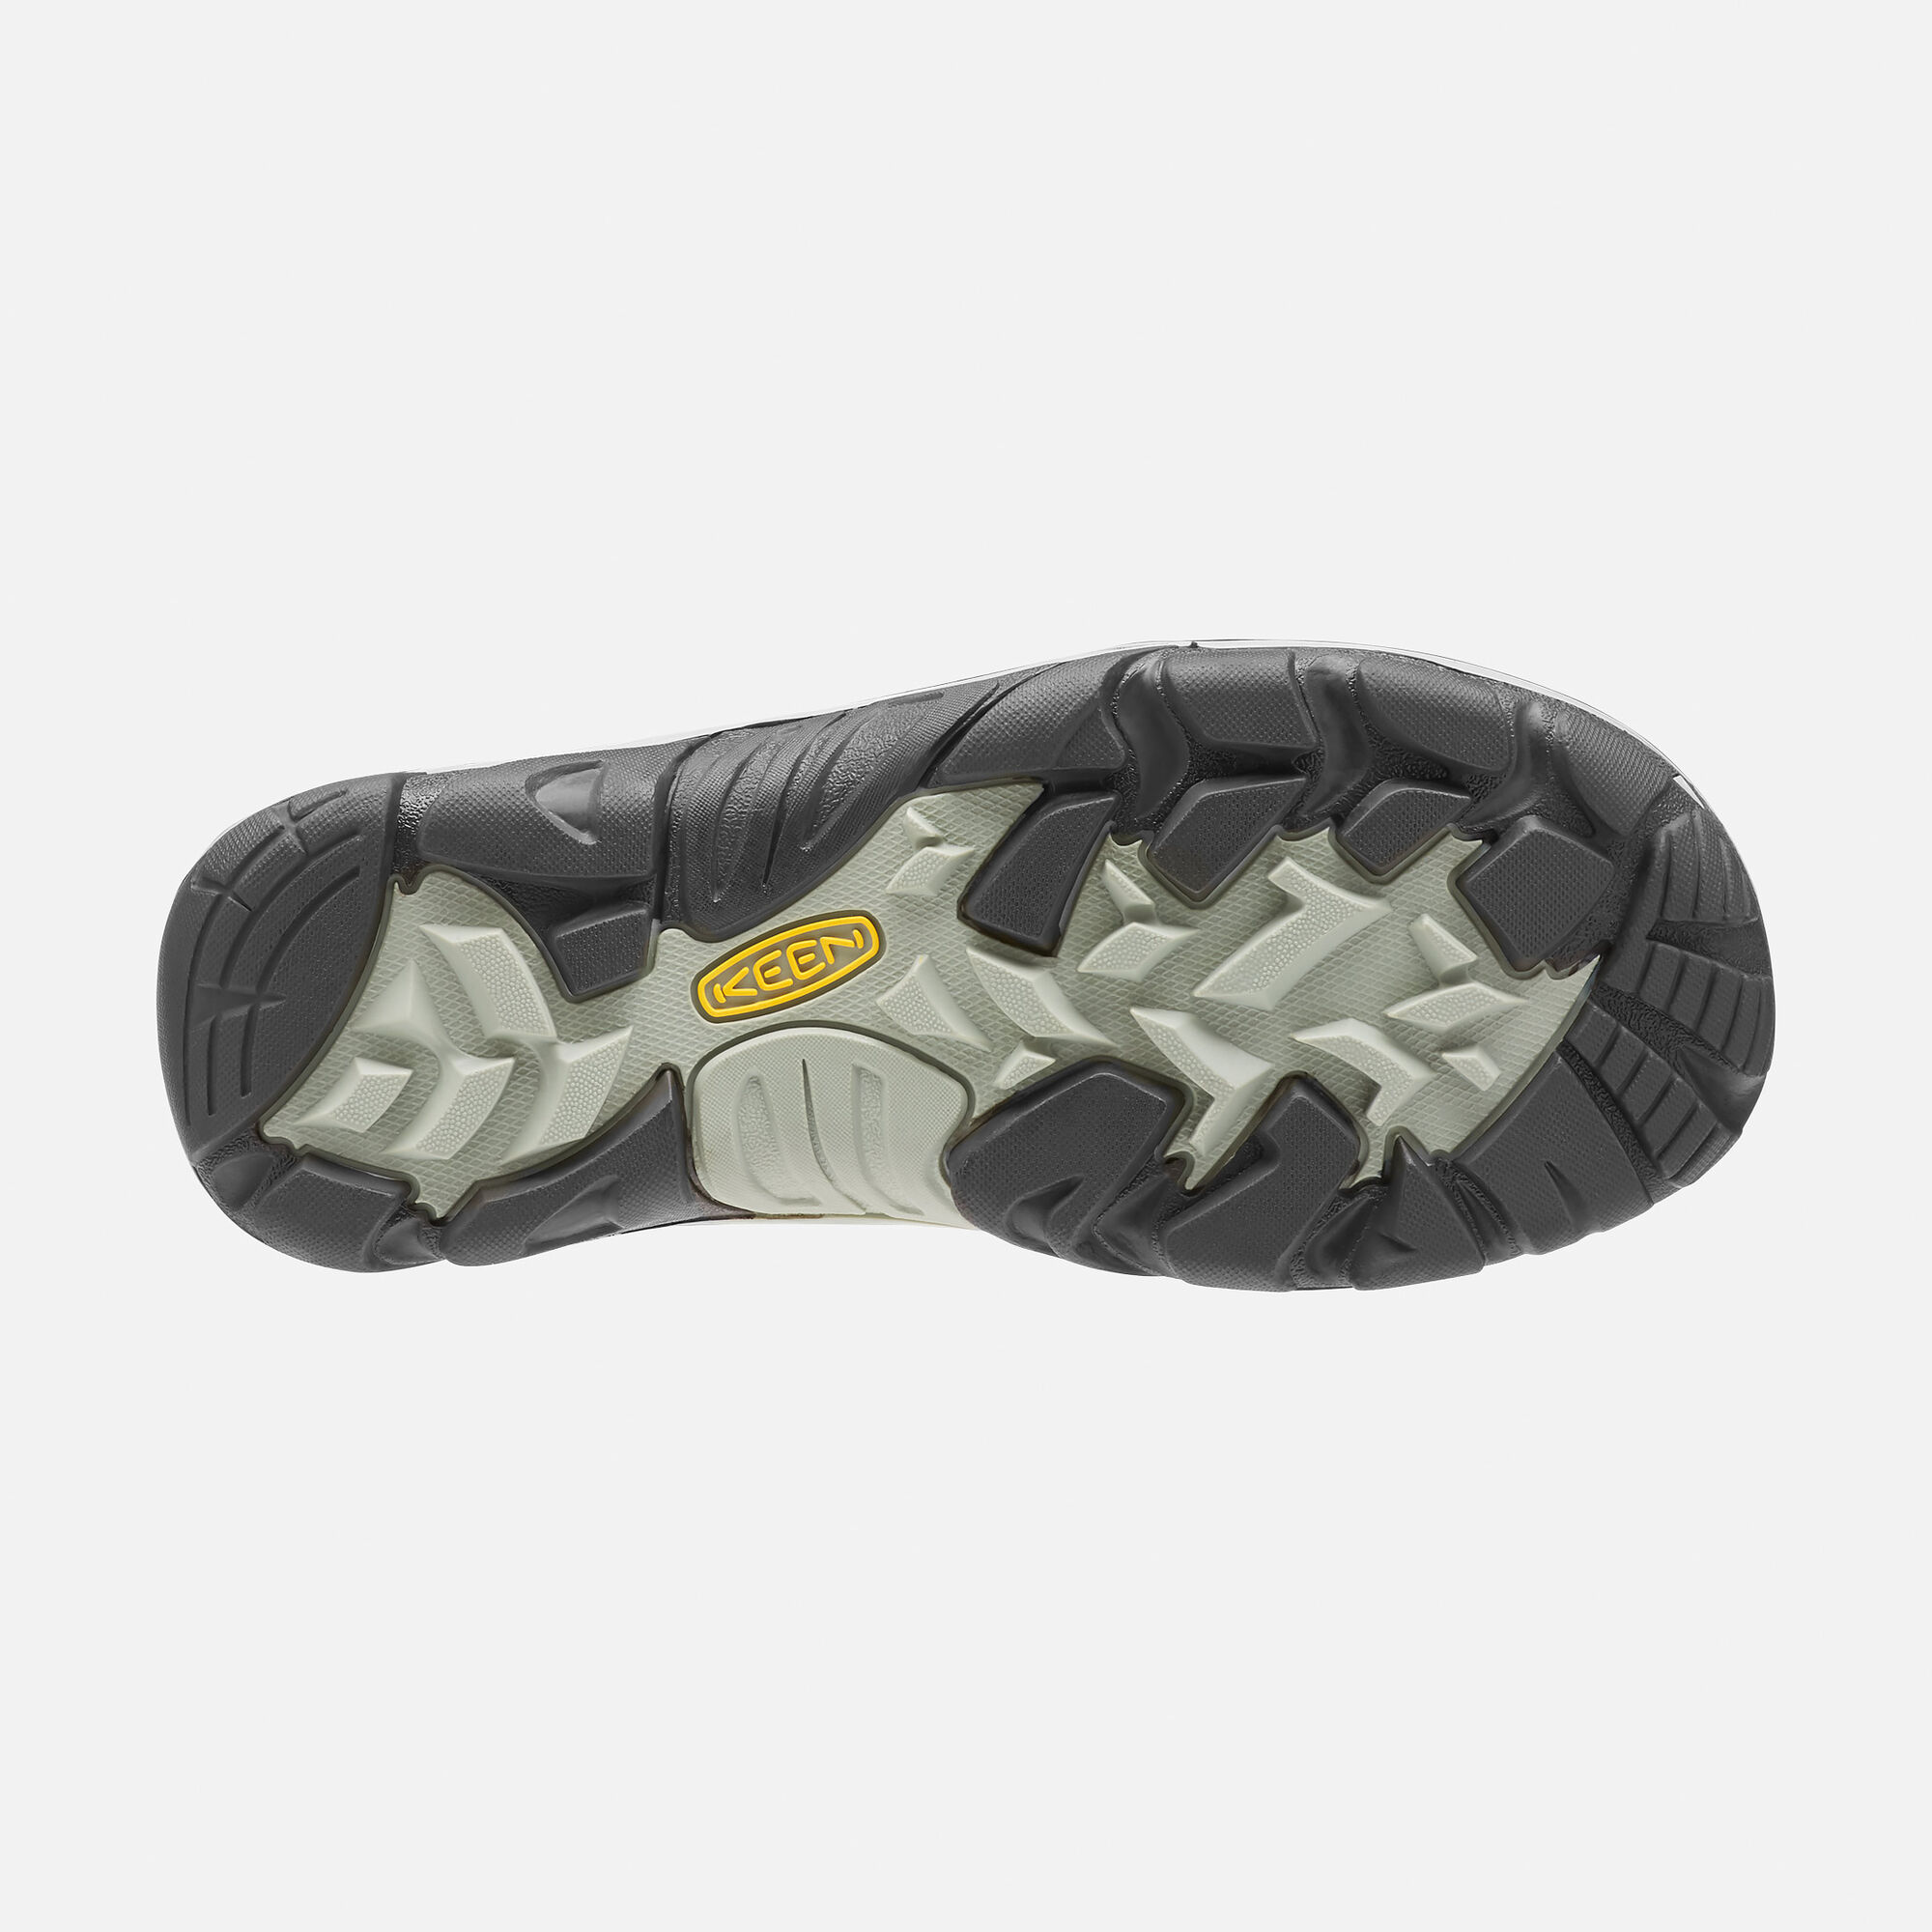 durand chat sites Official shoes of the 2017 finals mvp, kevin durant.